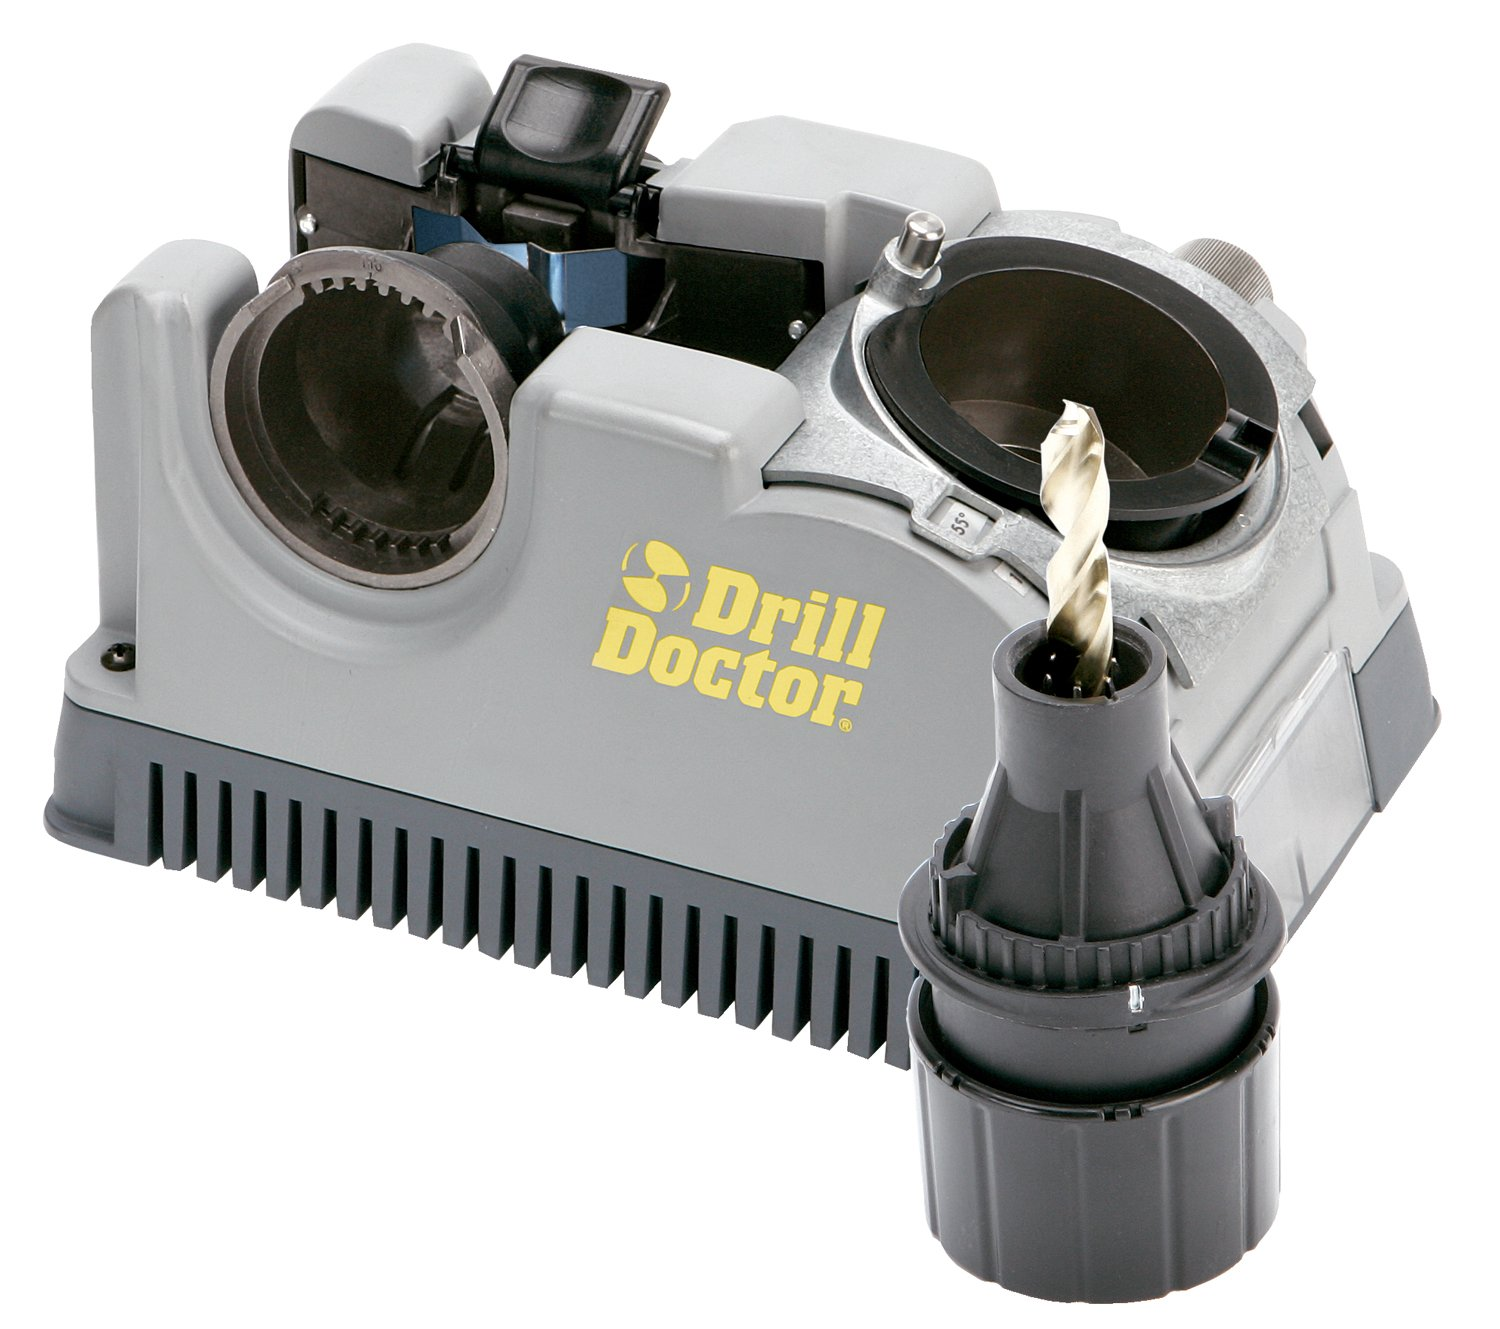 Drill Doctor DD750X Drill Doctor, 120V, 3/32'' to 3/4'' Capacity